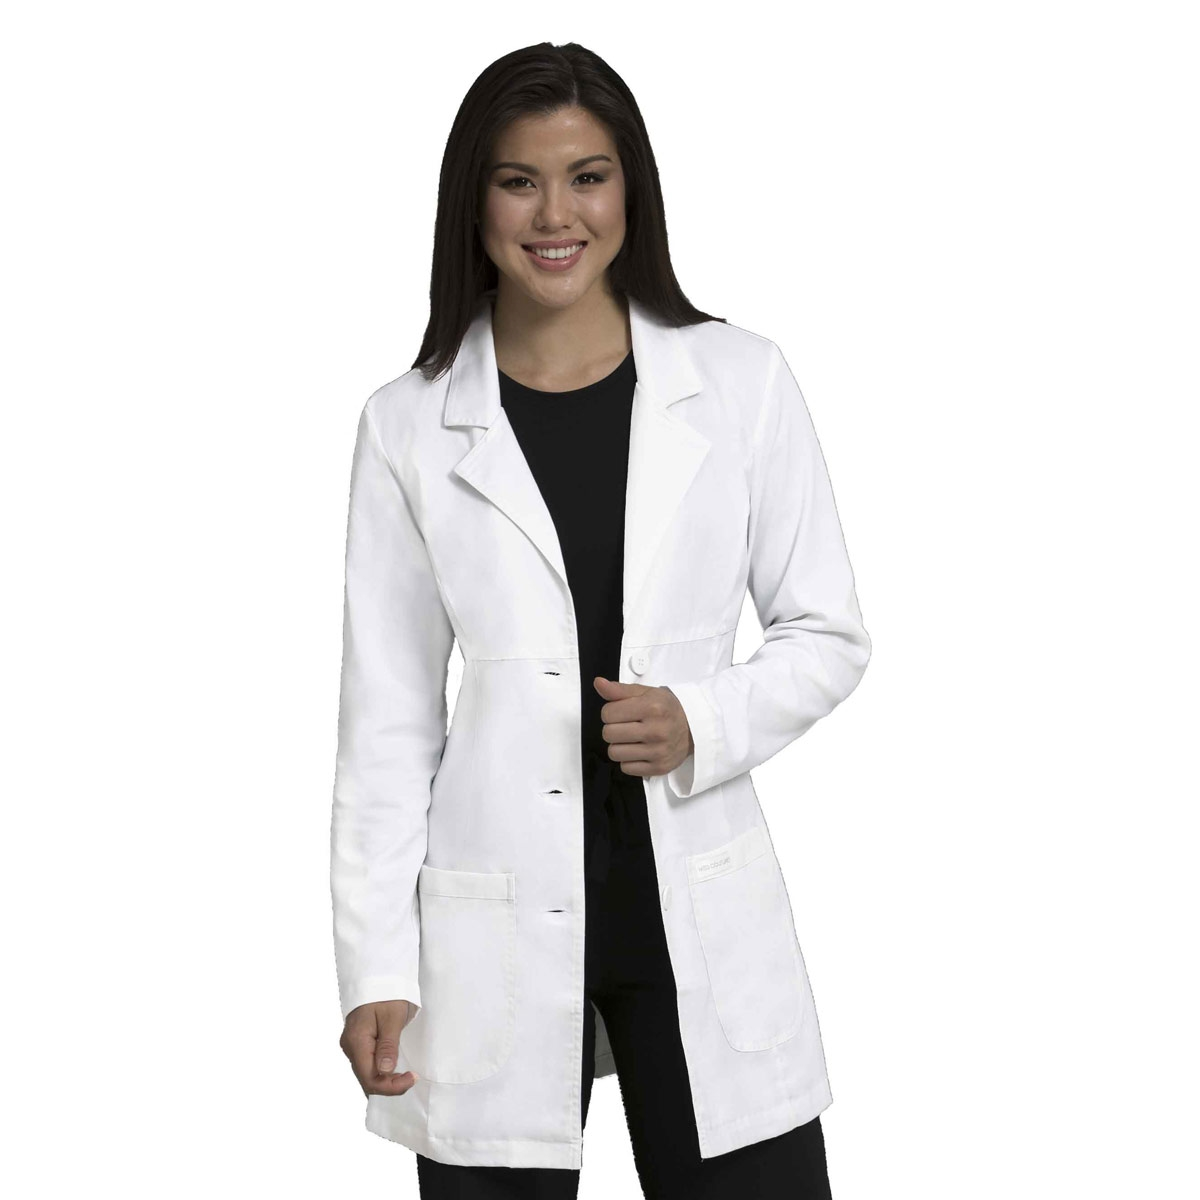 Shop Lab Coats Now | Large Selection from MedCouture